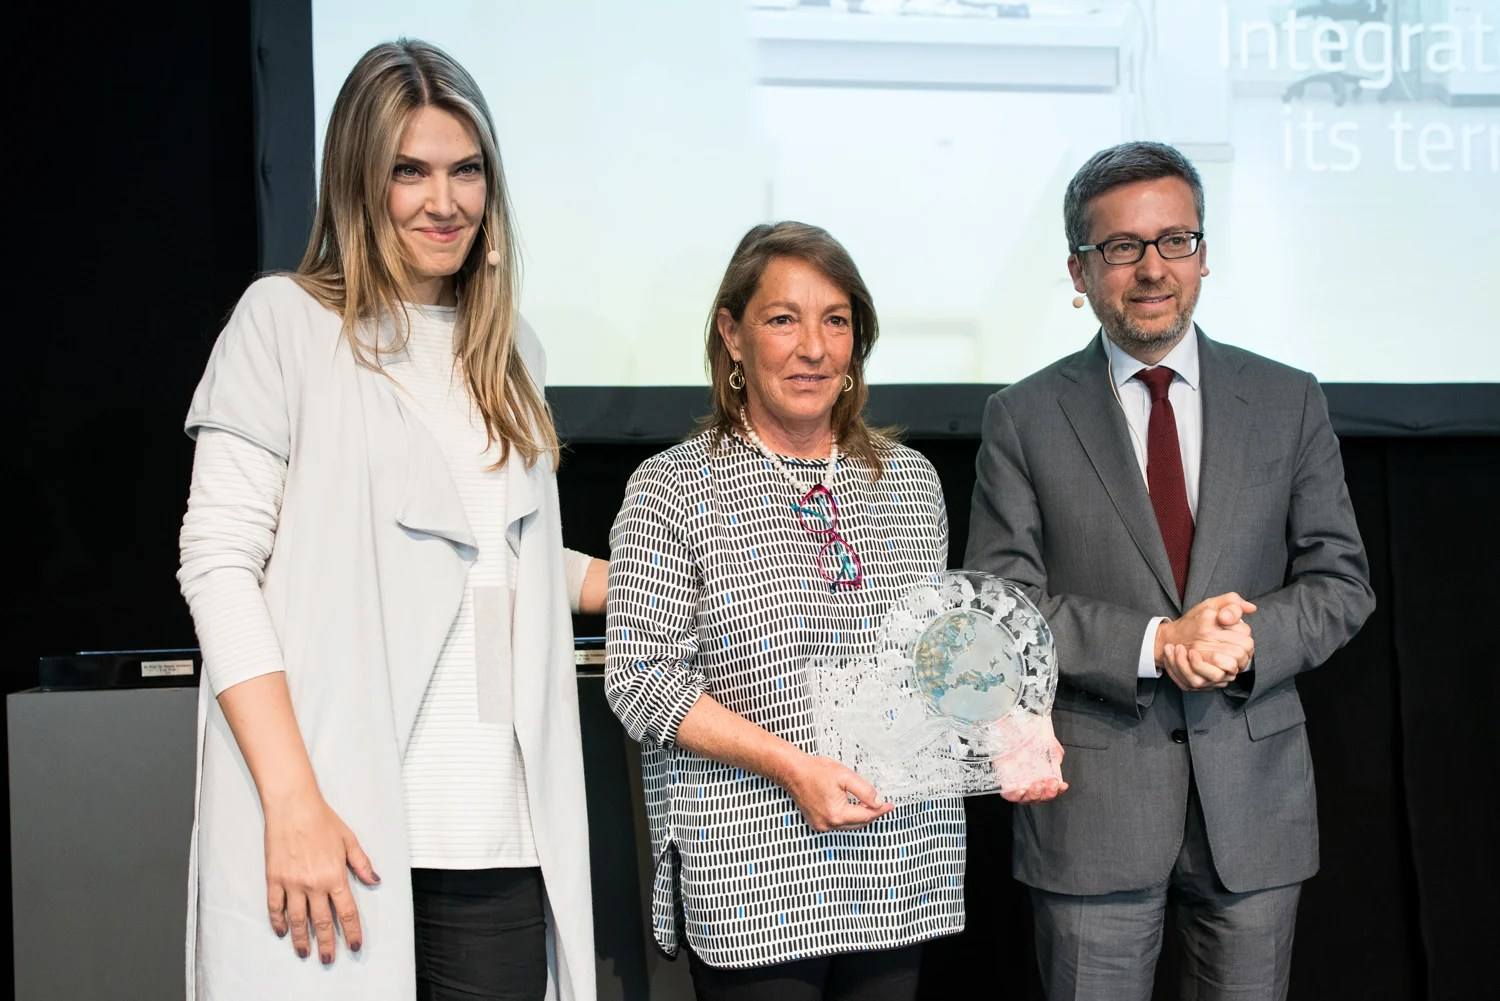 First prize was awarded to Dr Gabriella Colucci, whose companies identify active plant-based molecules for the cosmetics industry.